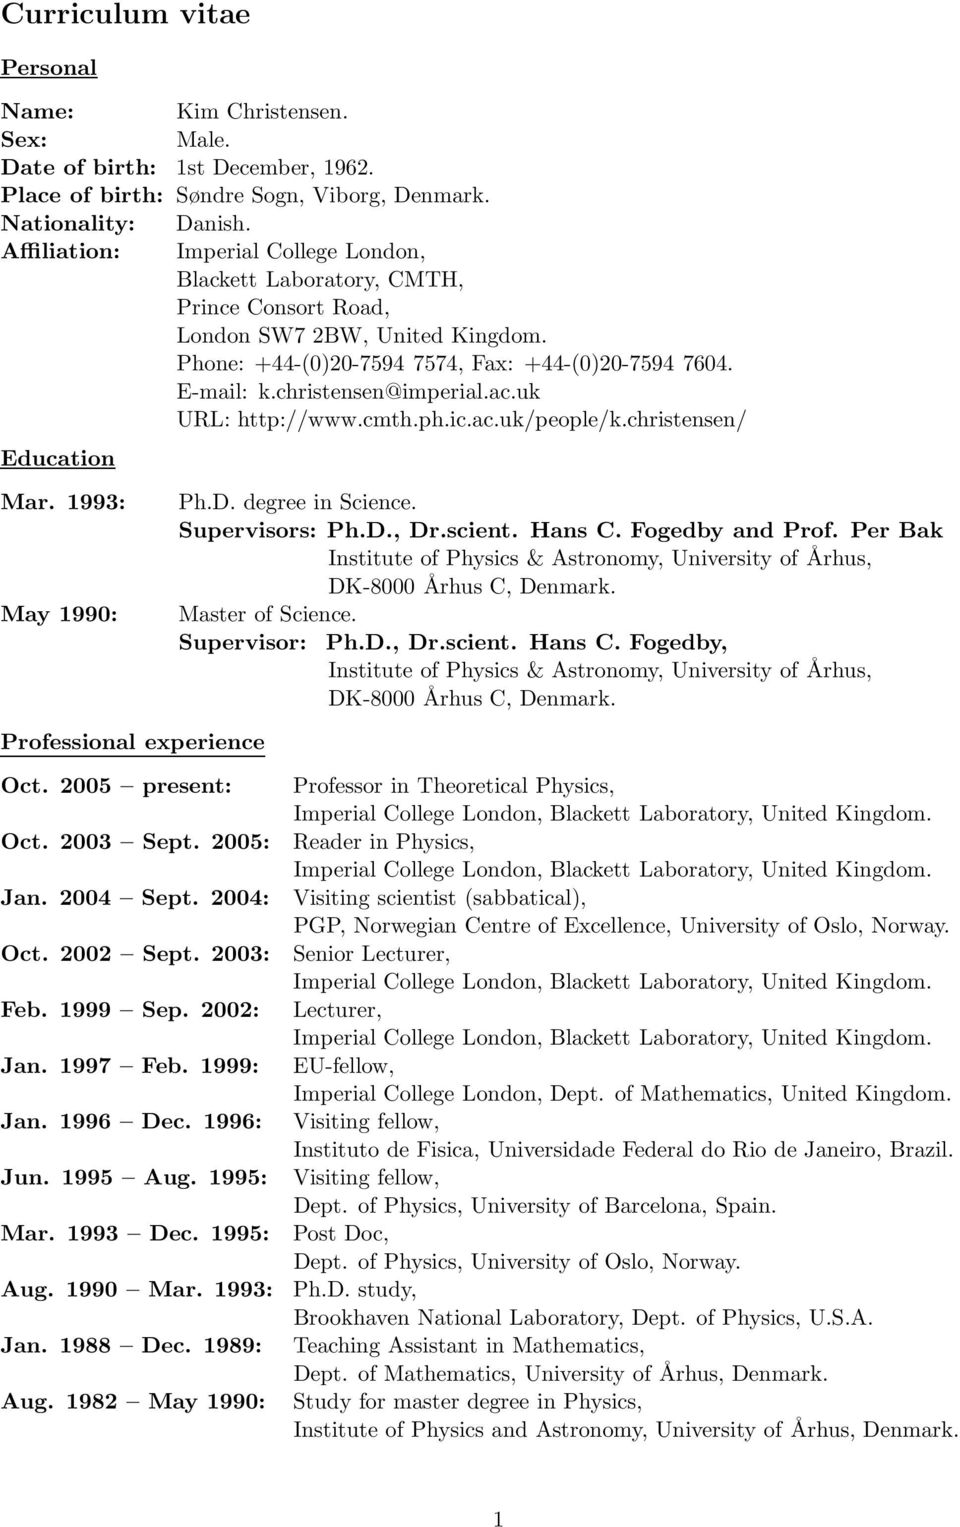 christensen@imperial.ac.uk URL: http://www.cmth.ph.ic.ac.uk/people/k.christensen/ Education Mar. 1993: May 1990: Ph.D. degree in Science. Supervisors: Ph.D., Dr.scient. Hans C. Fogedby and Prof.